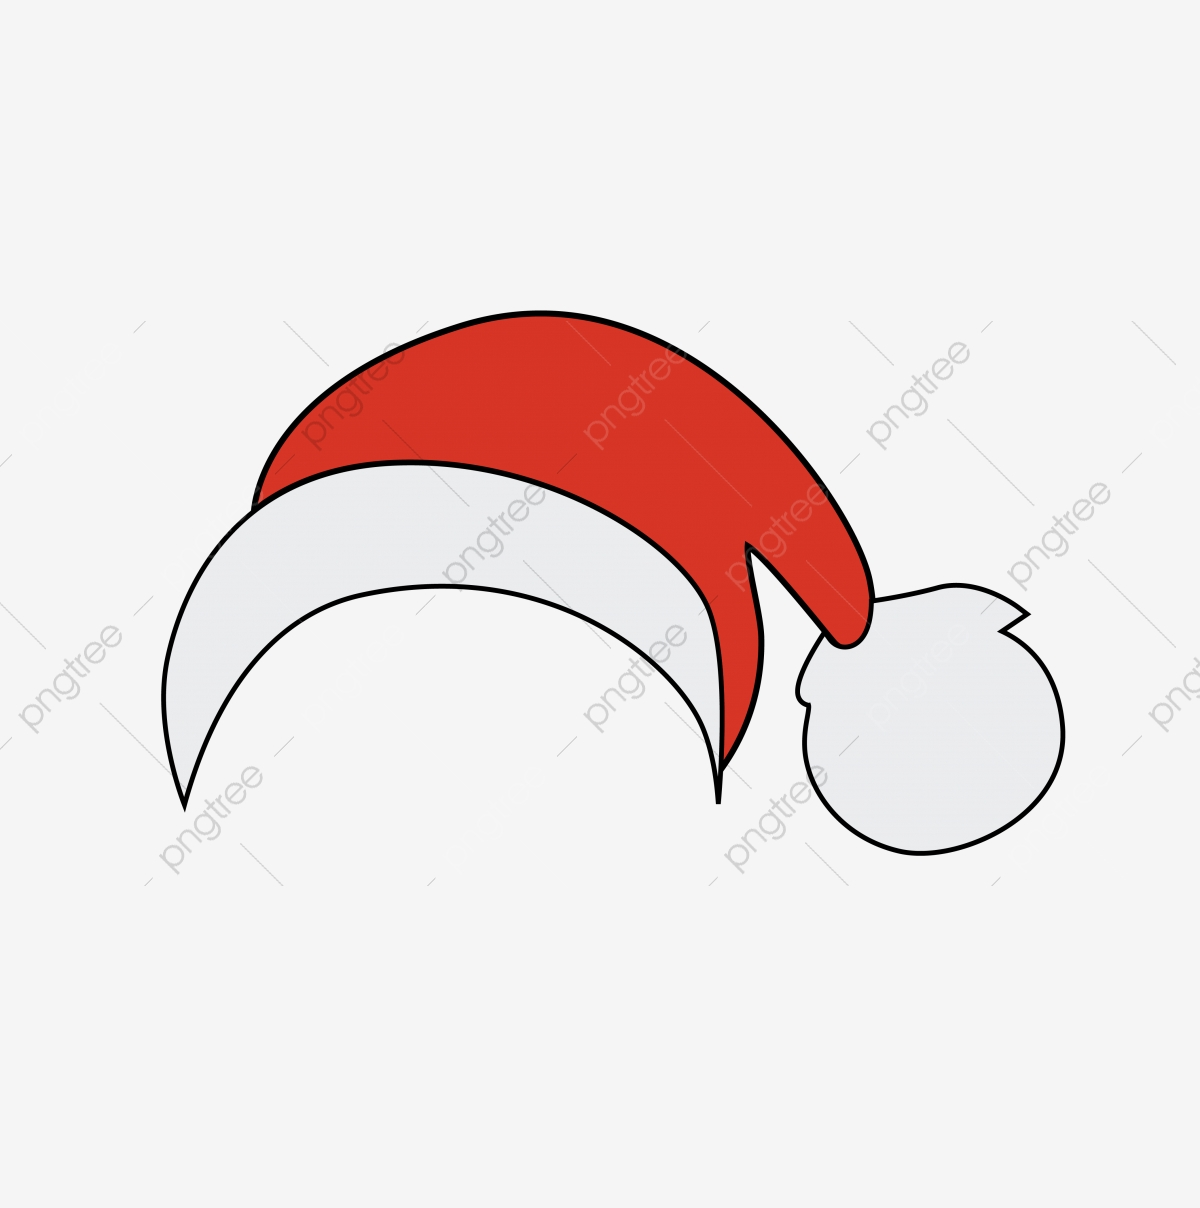 Christmas Hat Drawing Png.Christmas Red Cartoon Hat For Commercial Use Christmas